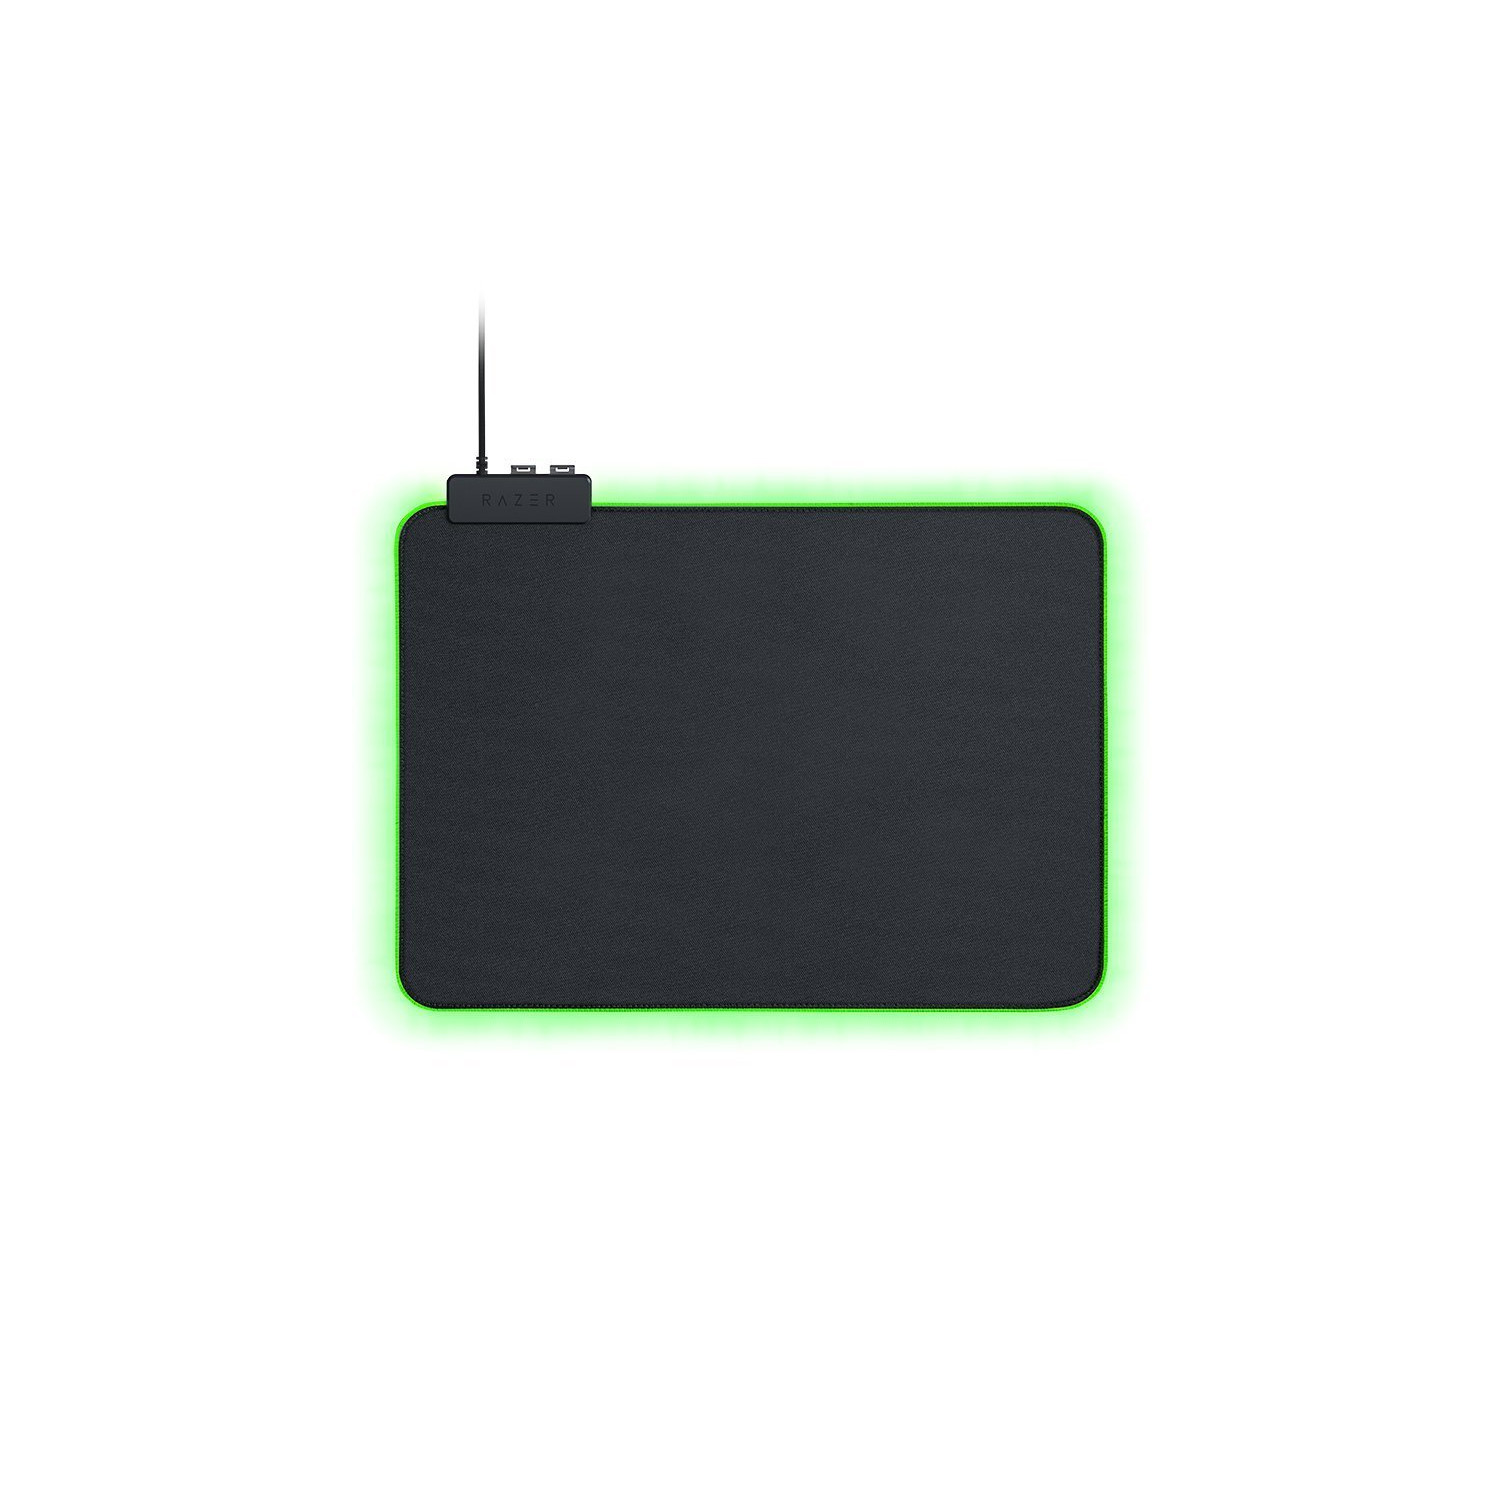 Details about Razer Goliathus Chroma Gaming Mouse Mat Synapse 3 Standard  Extended All Sizes DI